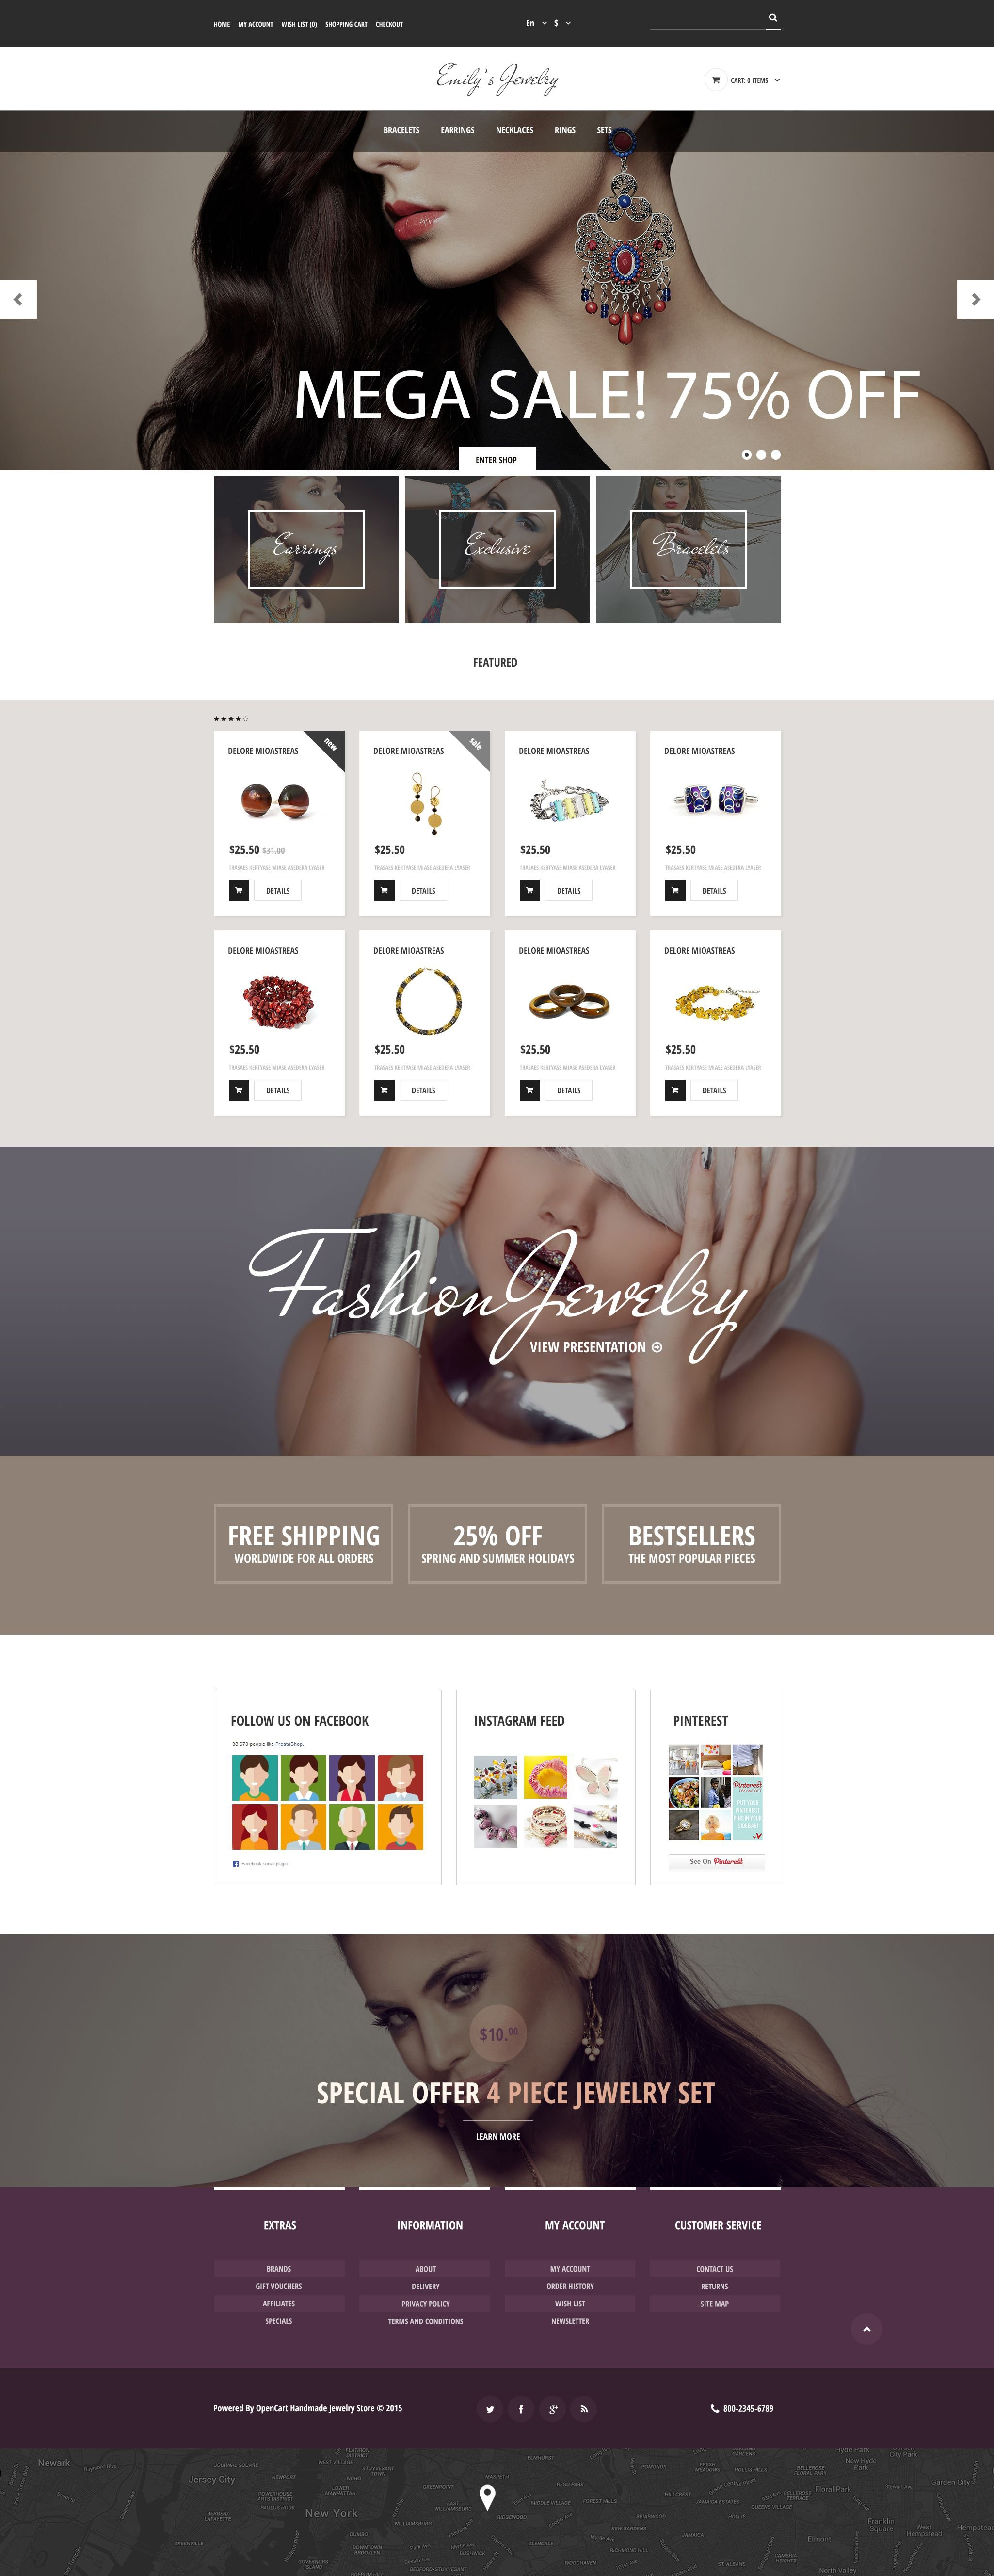 The Emily's Jewelry Jewelry Store Company OpenCart Design 53968, one of the best OpenCart templates of its kind (jewelry, most popular), also known as Emily's Jewelry jewelry store company OpenCart template, brand OpenCart template, collections online shop OpenCart template, jewels OpenCart template, gold OpenCart template, silver OpenCart template, golden ring OpenCart template, rings OpenCart template, watch OpenCart template, watches store OpenCart template, souvenir OpenCart template, present and related with Emily's Jewelry jewelry store company, brand, collections online shop, jewels, gold, silver, golden ring, rings, watch, watches store, souvenir, present, etc.